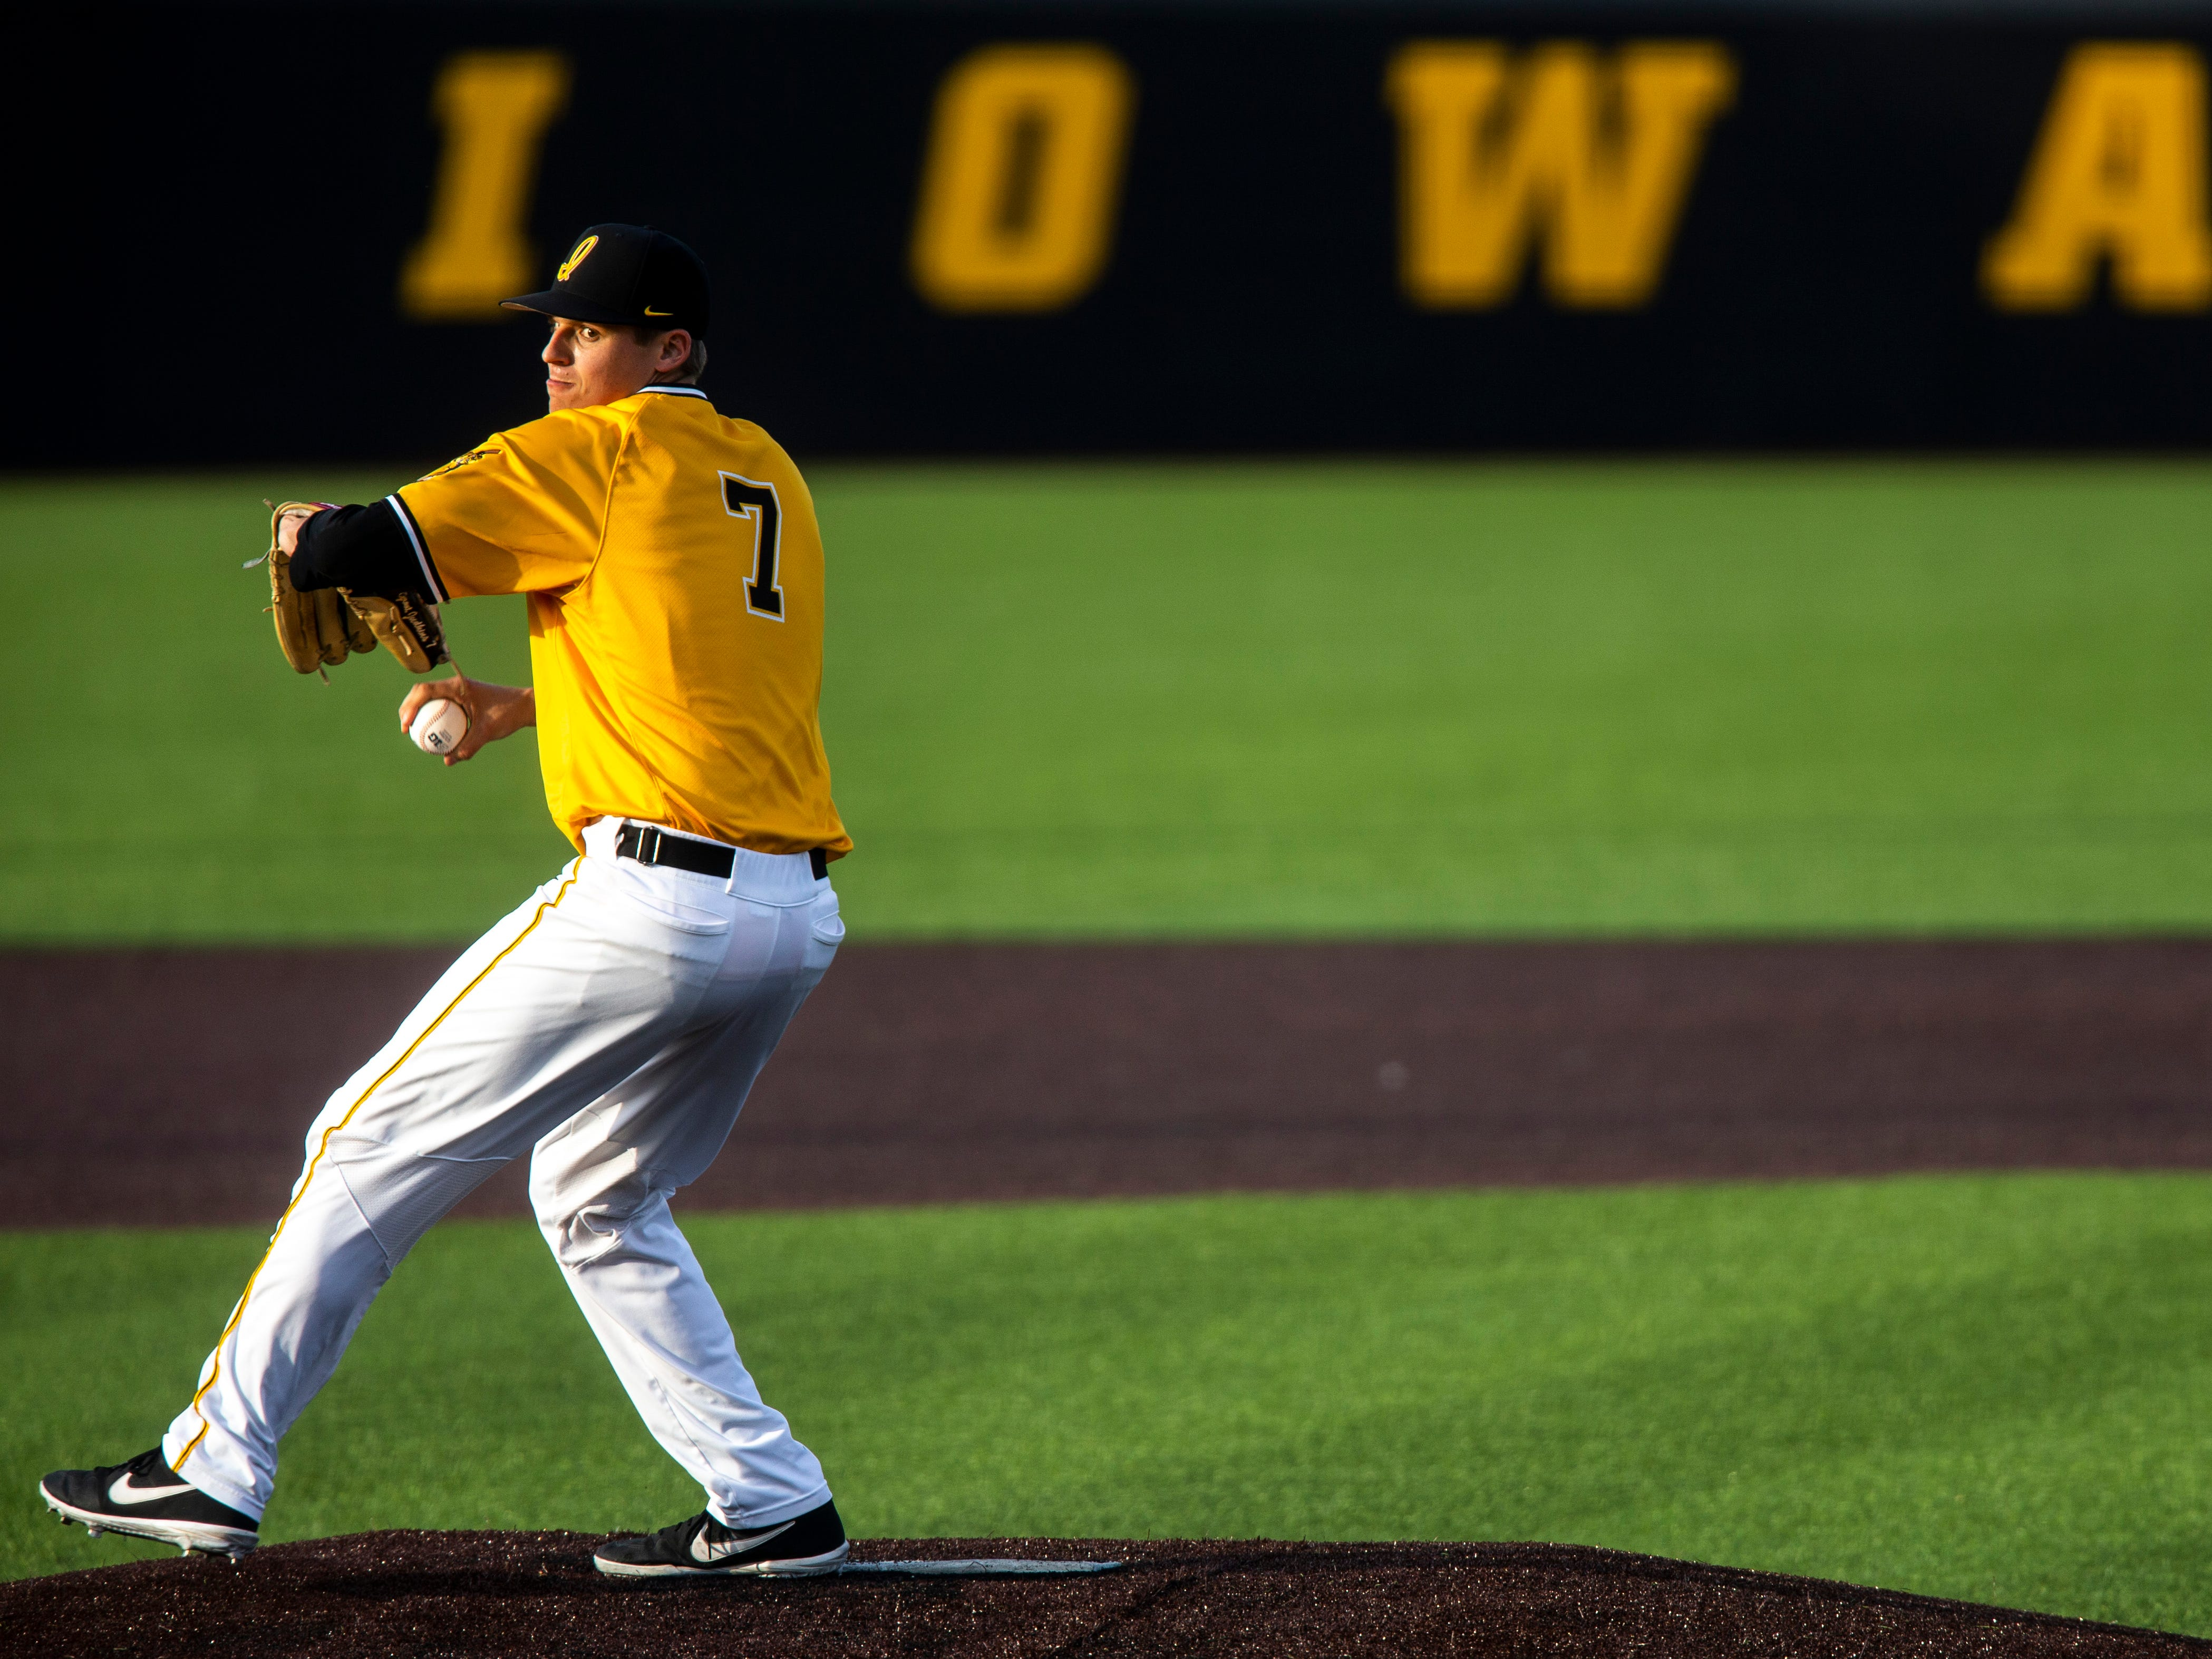 Iowa's Grant Judkins (7) delivers a pitch during a NCAA Big Ten Conference baseball game on Saturday, April 6, 2019, at Duane Banks Field in Iowa City, Iowa.